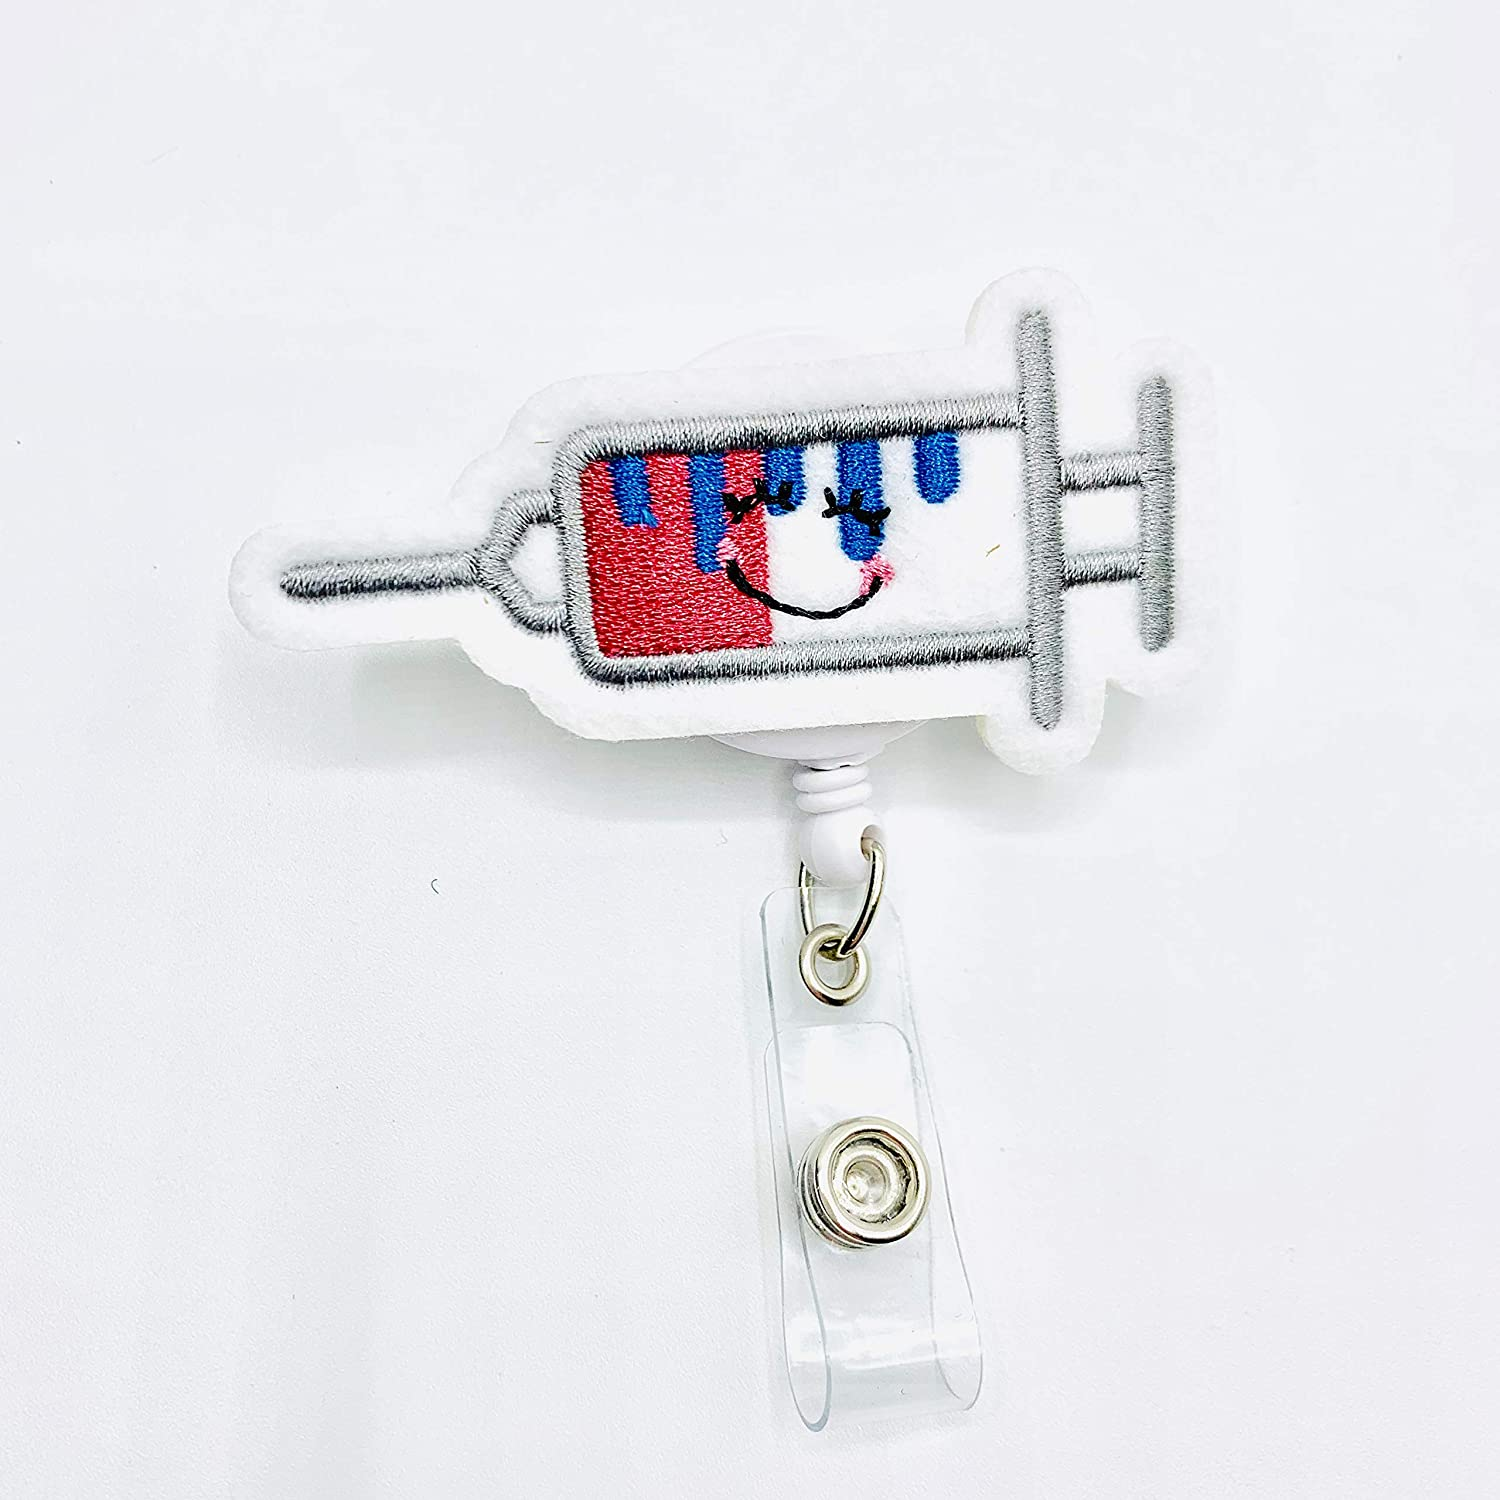 Amazon.com: Syringe Retractable Badge Reel Holder ...